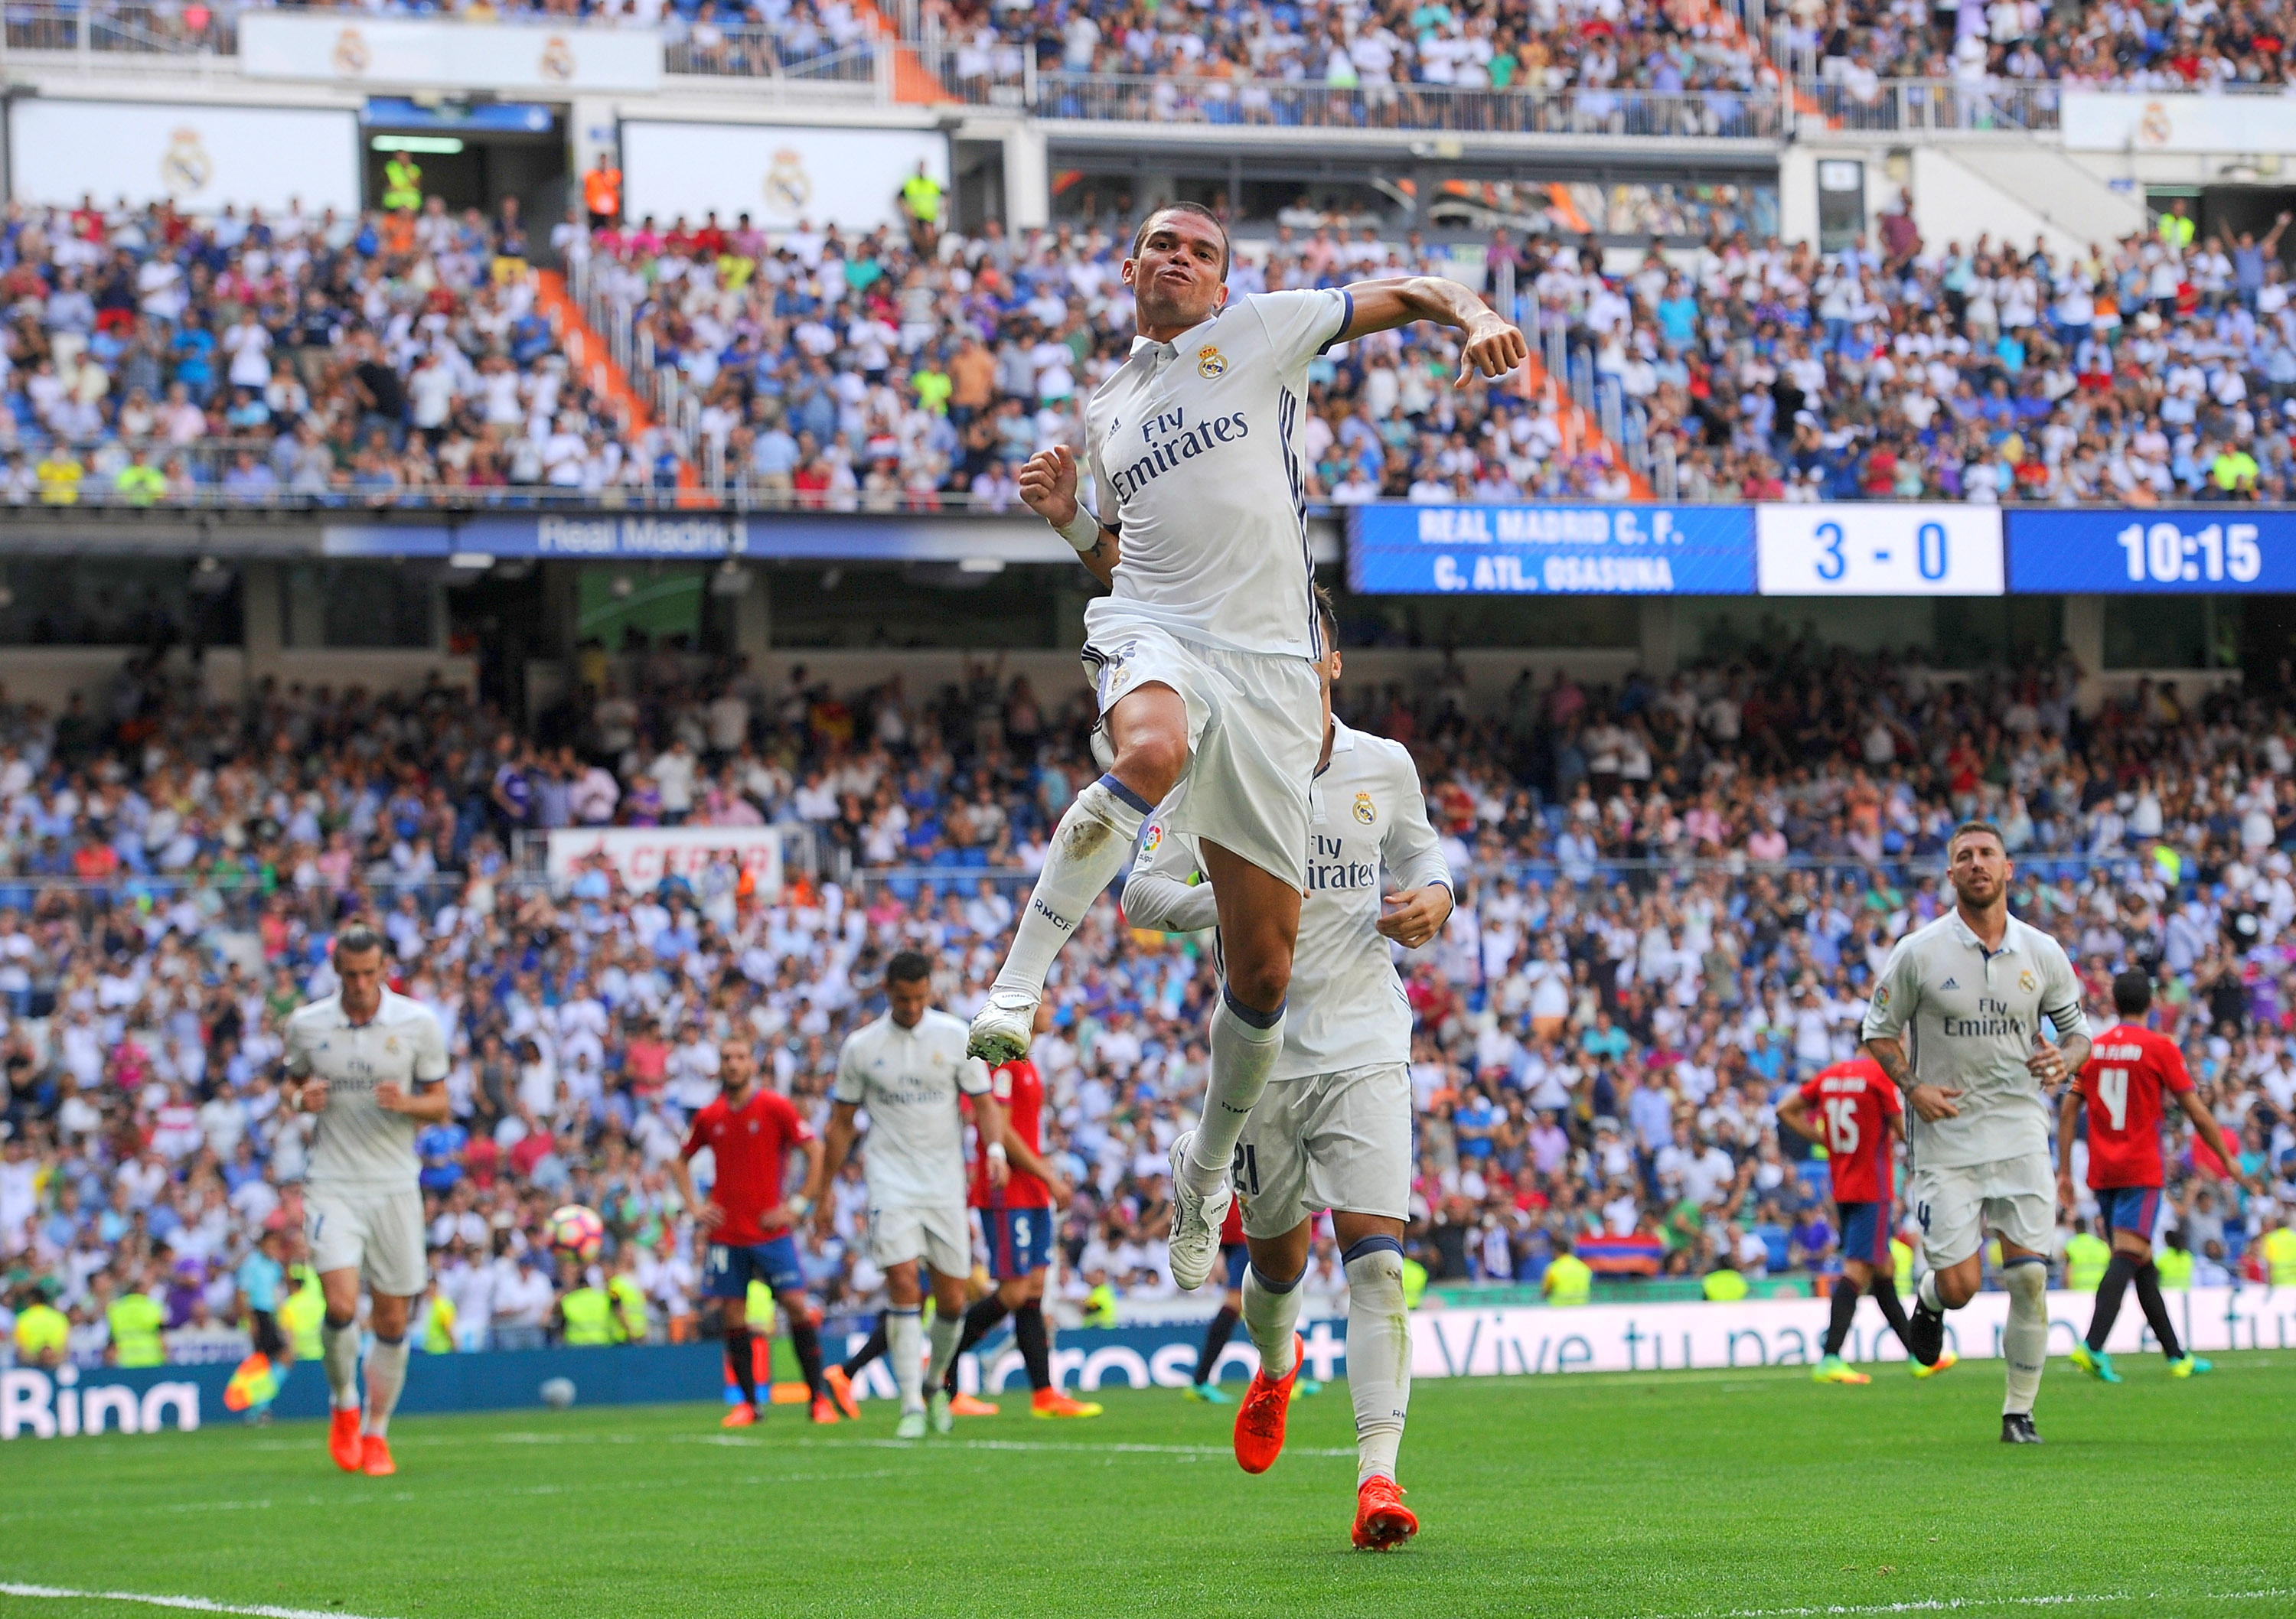 Four things to look out for in Spain's Match Day 3